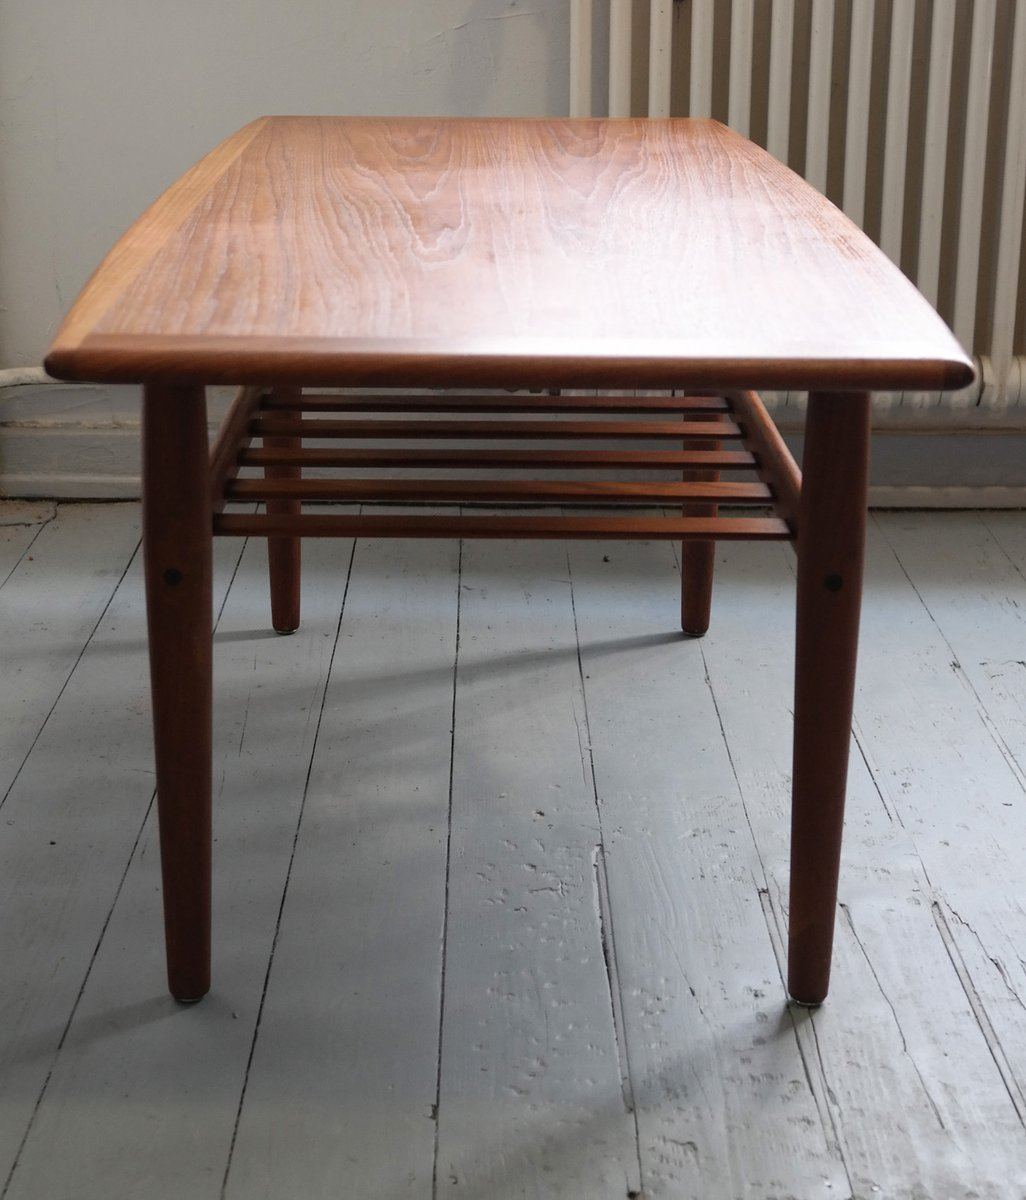 Teak Coffee Table By Grete Jalk For Glostrup, 1969 For